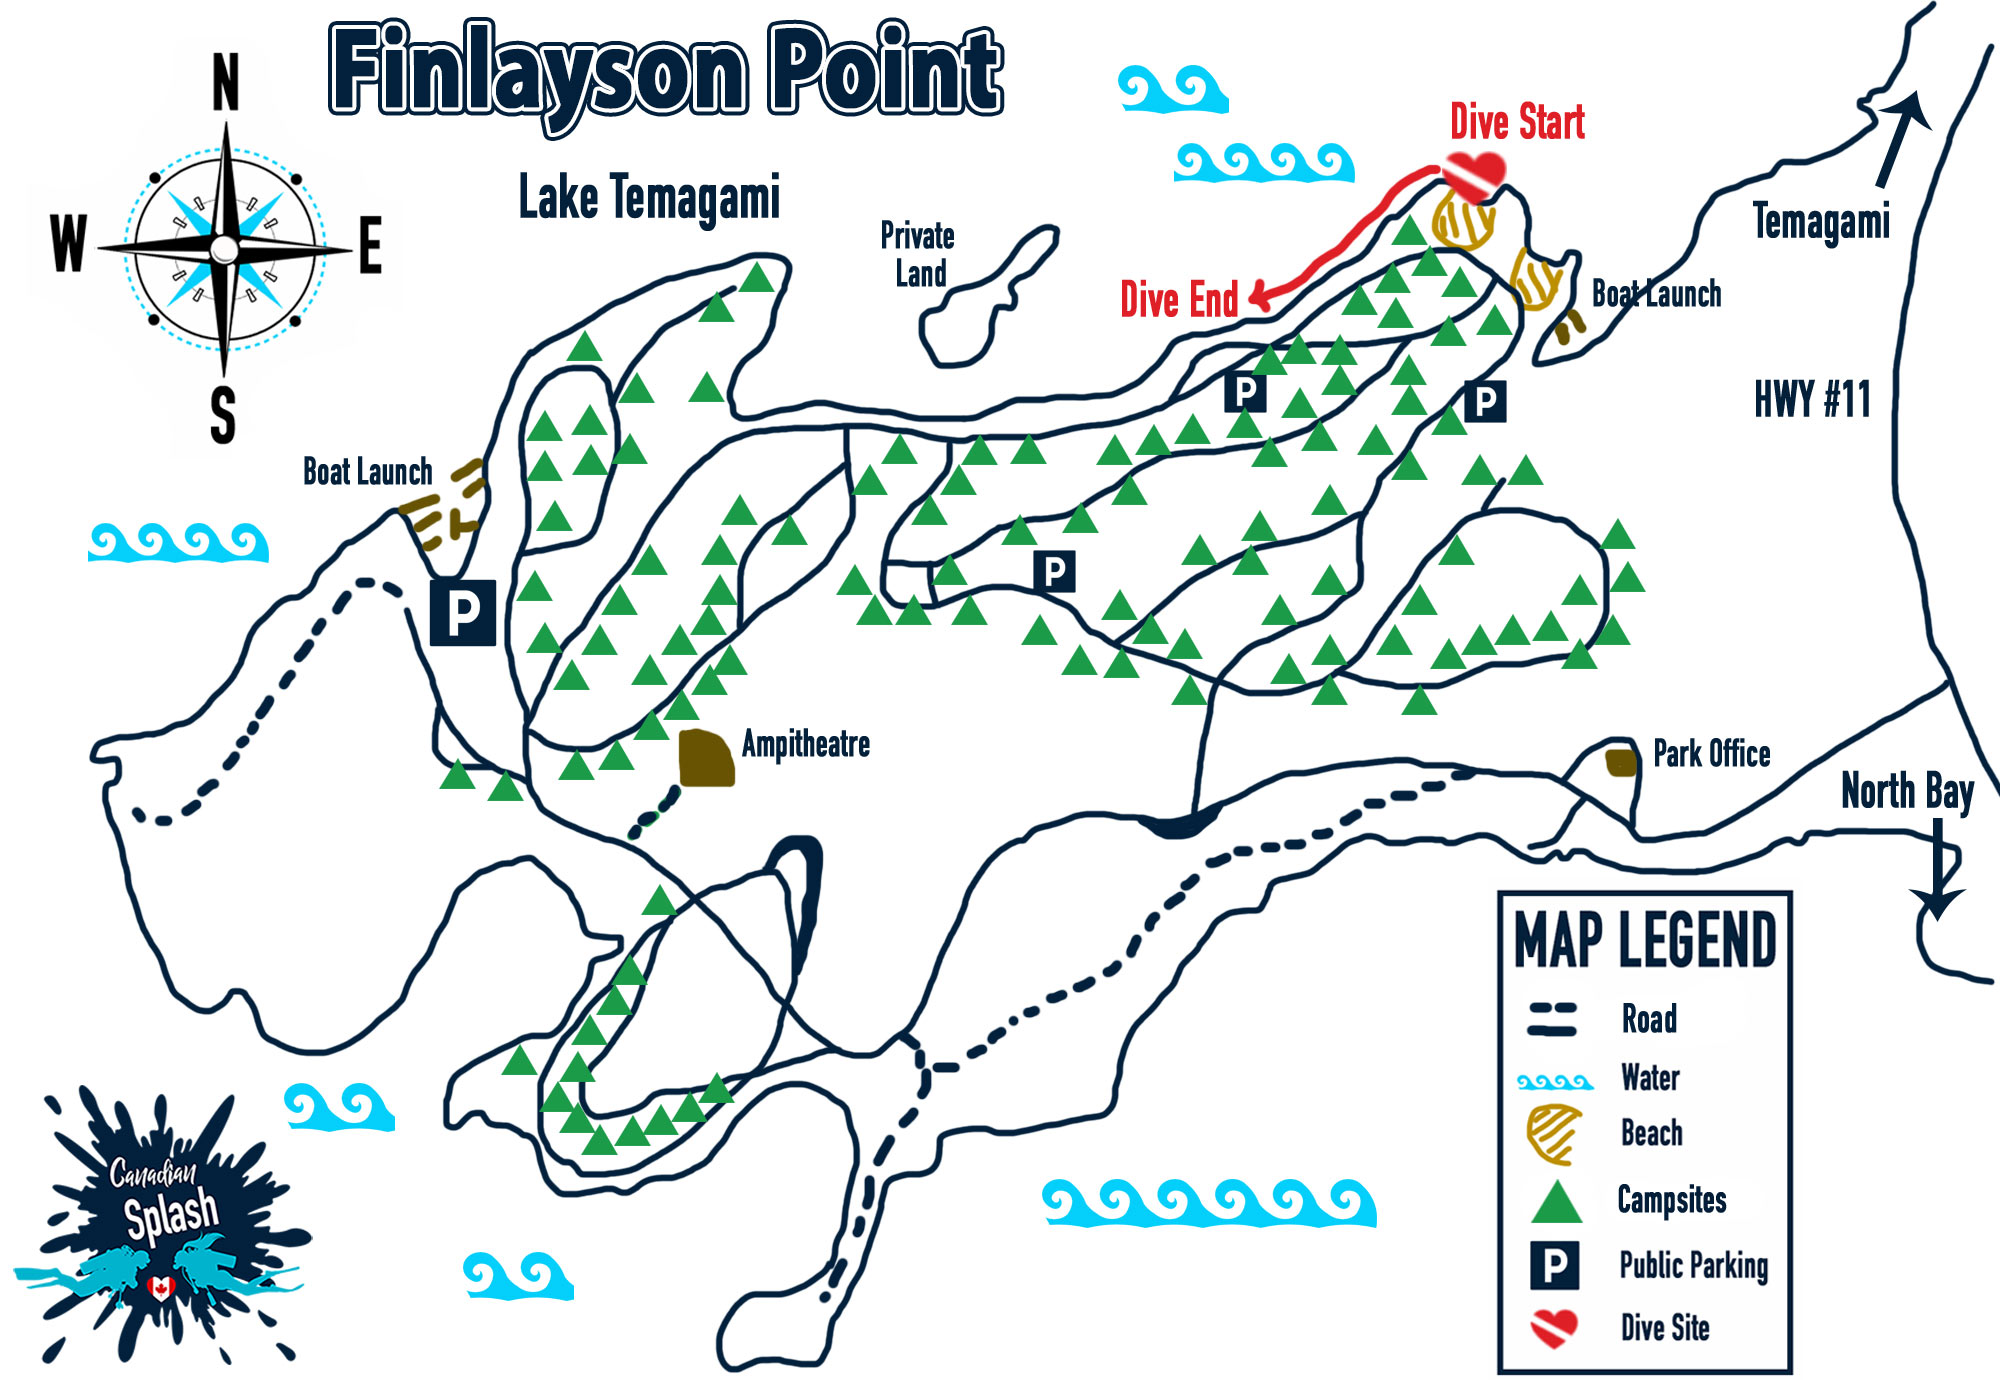 Finlayson Point Provincial Park Map And Dive Site Entry And Exit Point